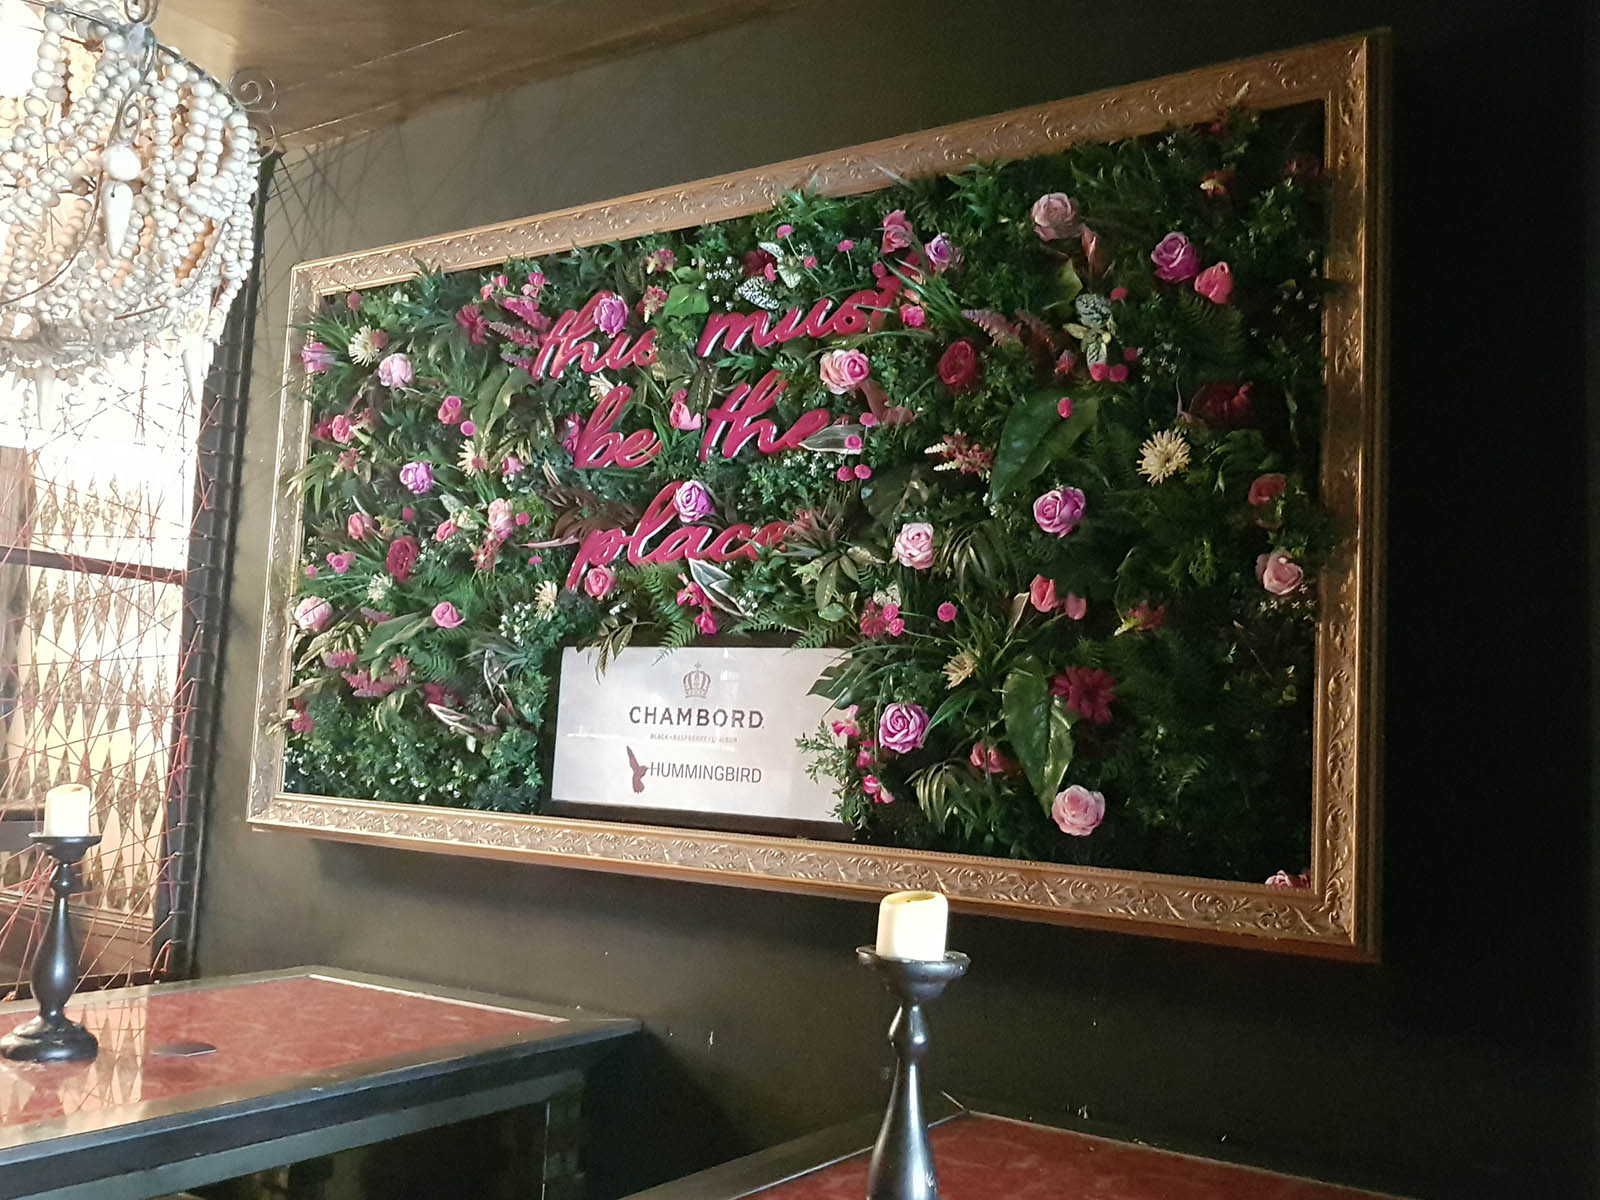 Chambord branded bespoke artificial foliage wall with pink flowers, neon signage and gold frame in Glasgow cocktail bar